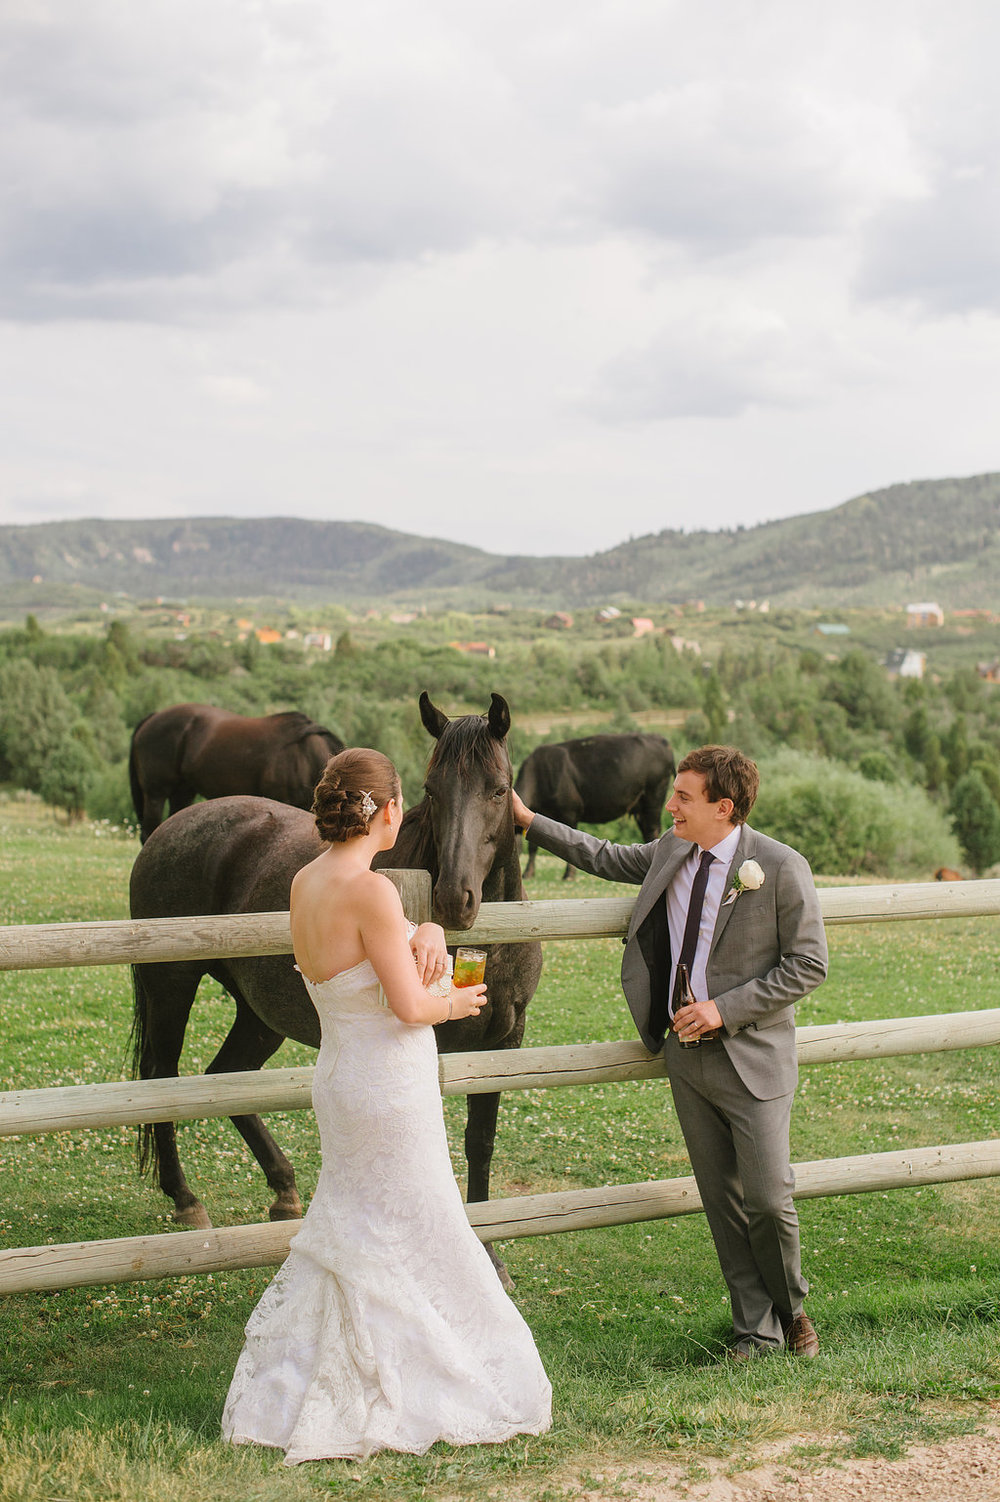 Rustic Chic Red Cliff Ranch Wedding Designed and Planned by Michelle Leo Events | Heather Nan Photography